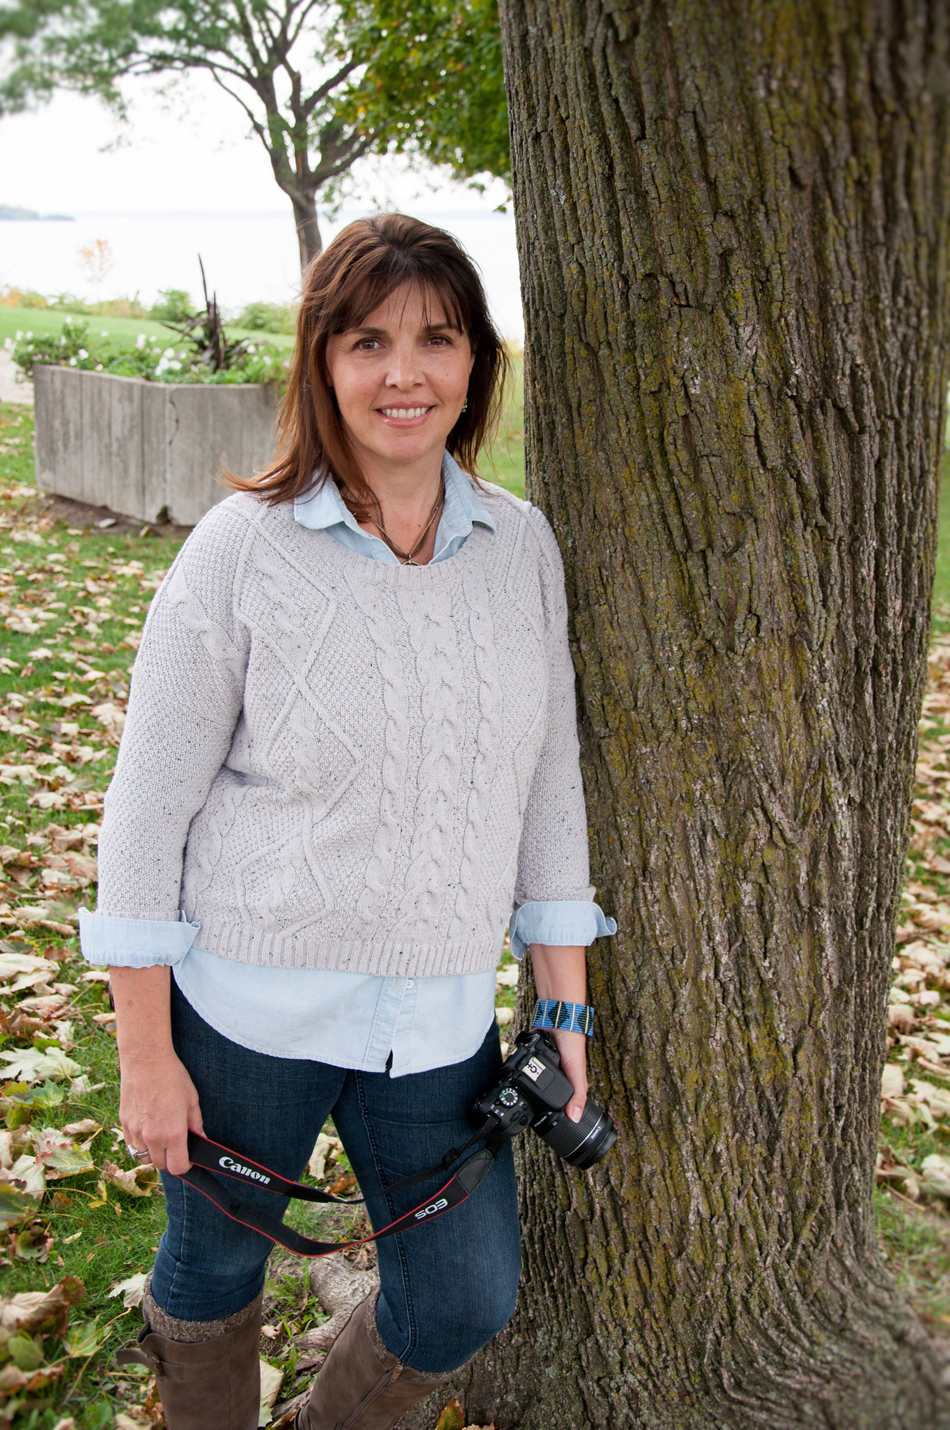 woman leaning against big tree holding camera and wearing grey sweater, blue jeans and brown boots